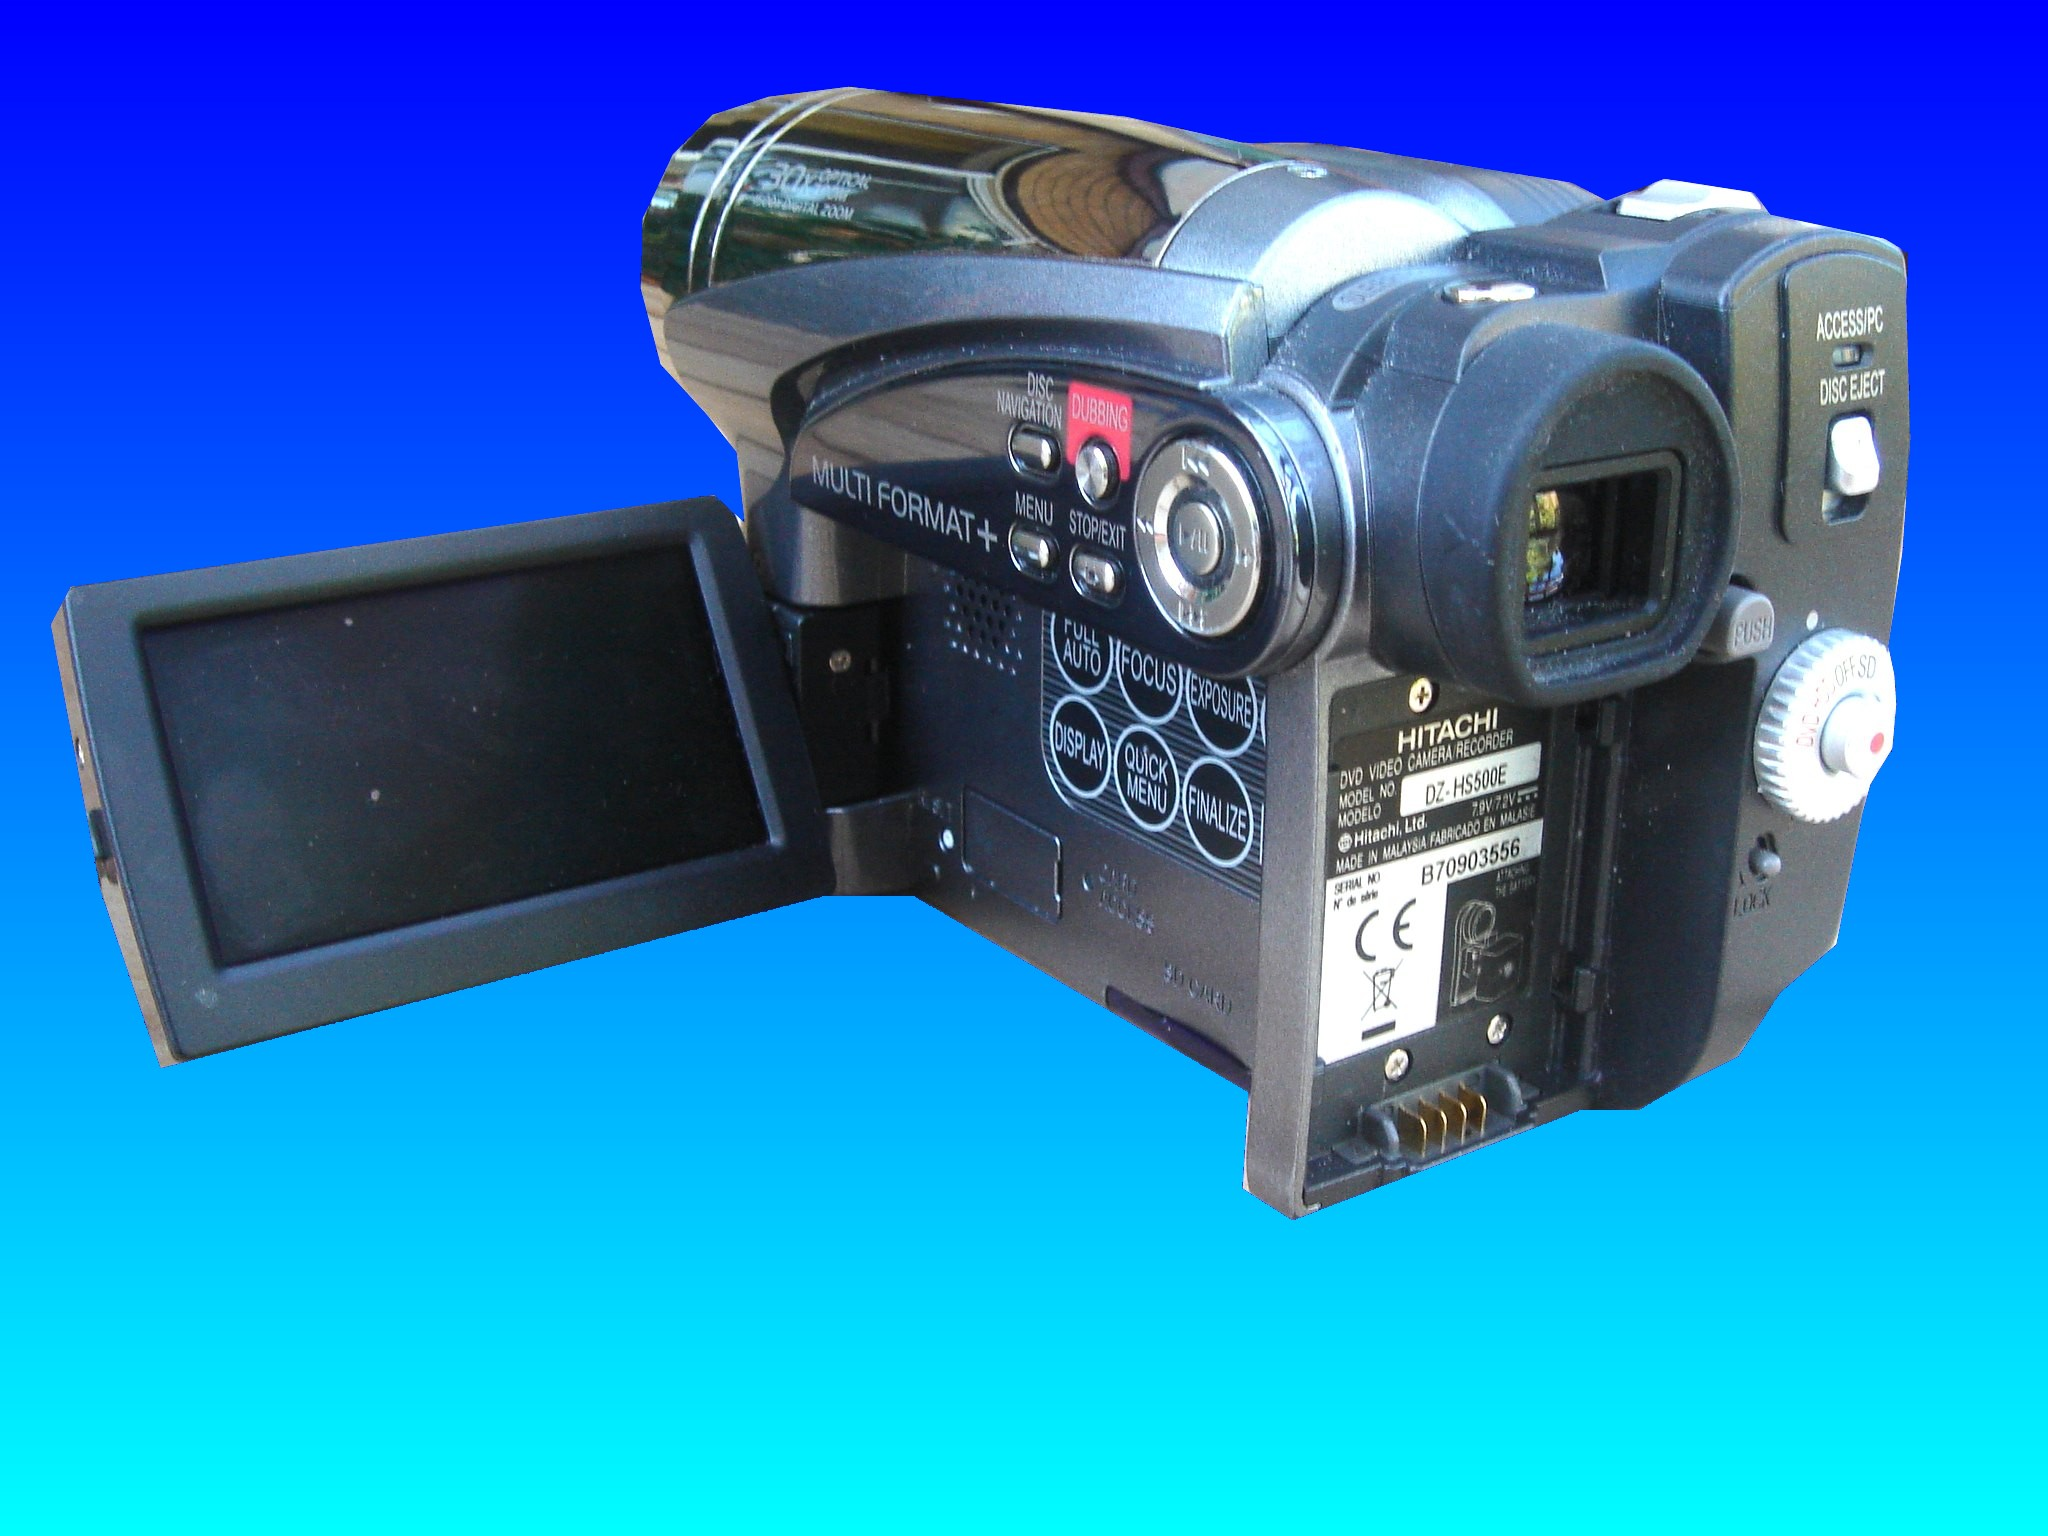 An Hitachi DZ-HS500E camcorder in for recovery of video from the hard disk drive. The videos were deleted accidentally so once recovery had taken place, they were saved to a USB flash memeory stick.